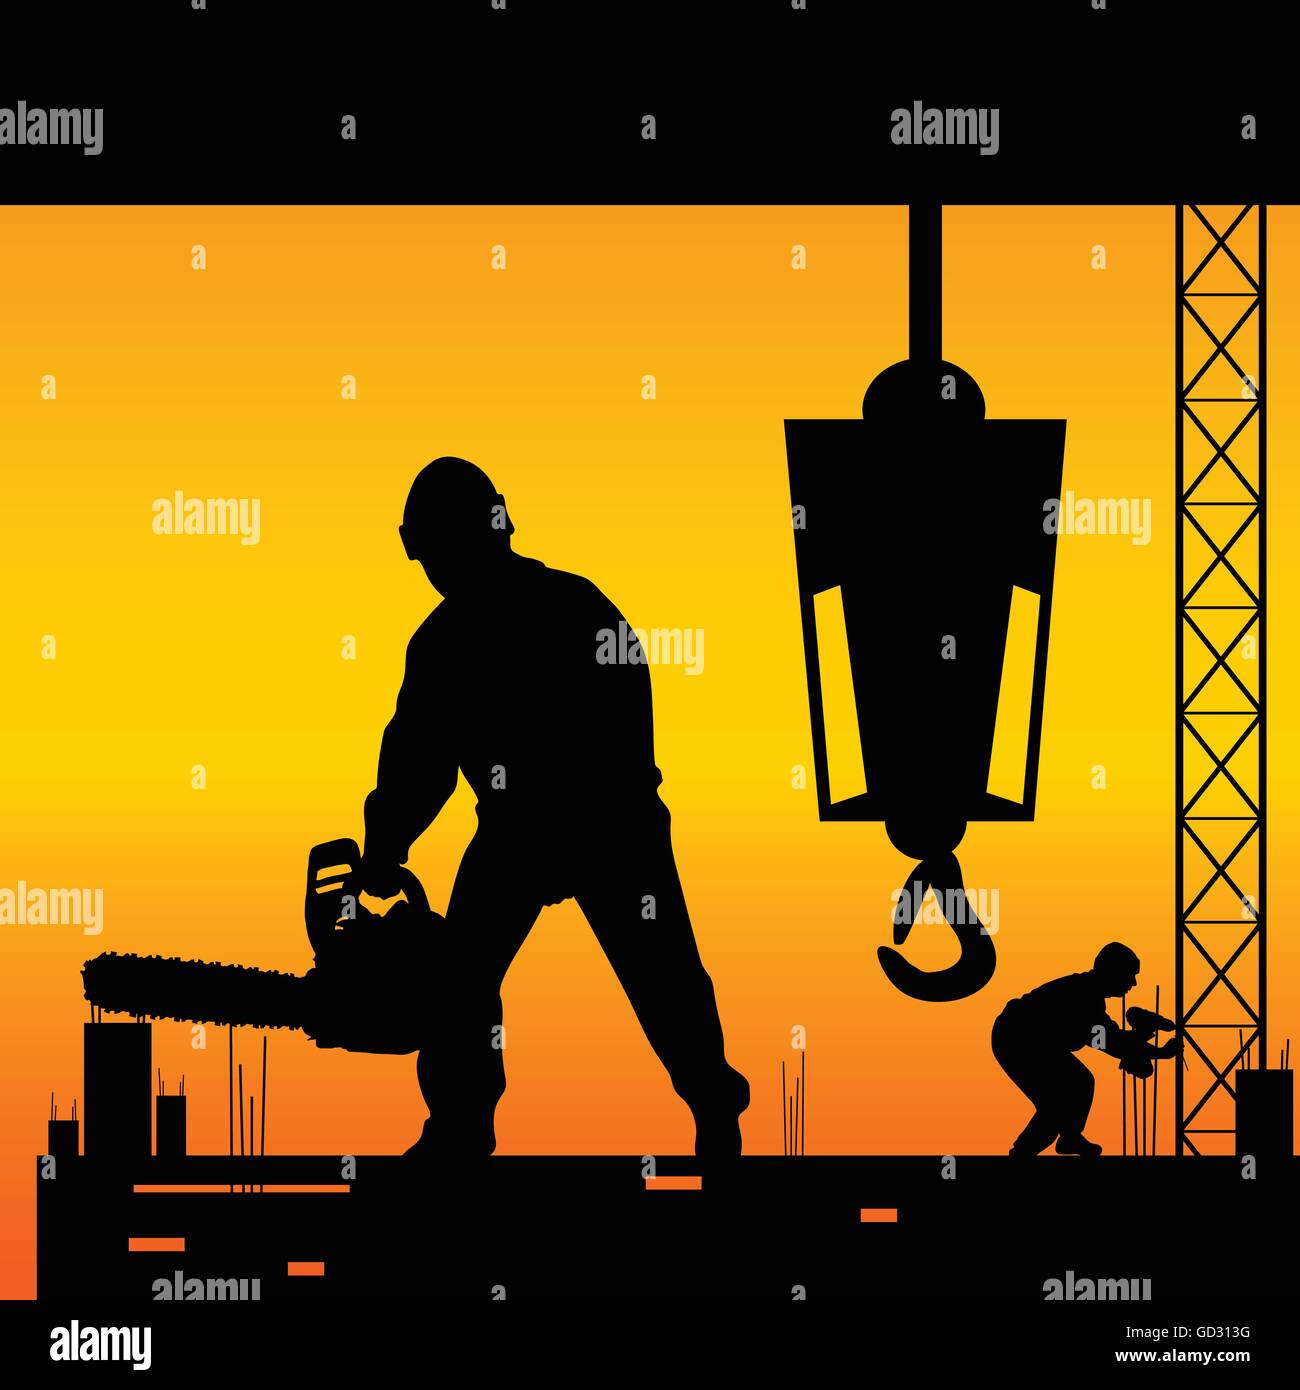 workers on a construction site vector illustration - Stock Vector